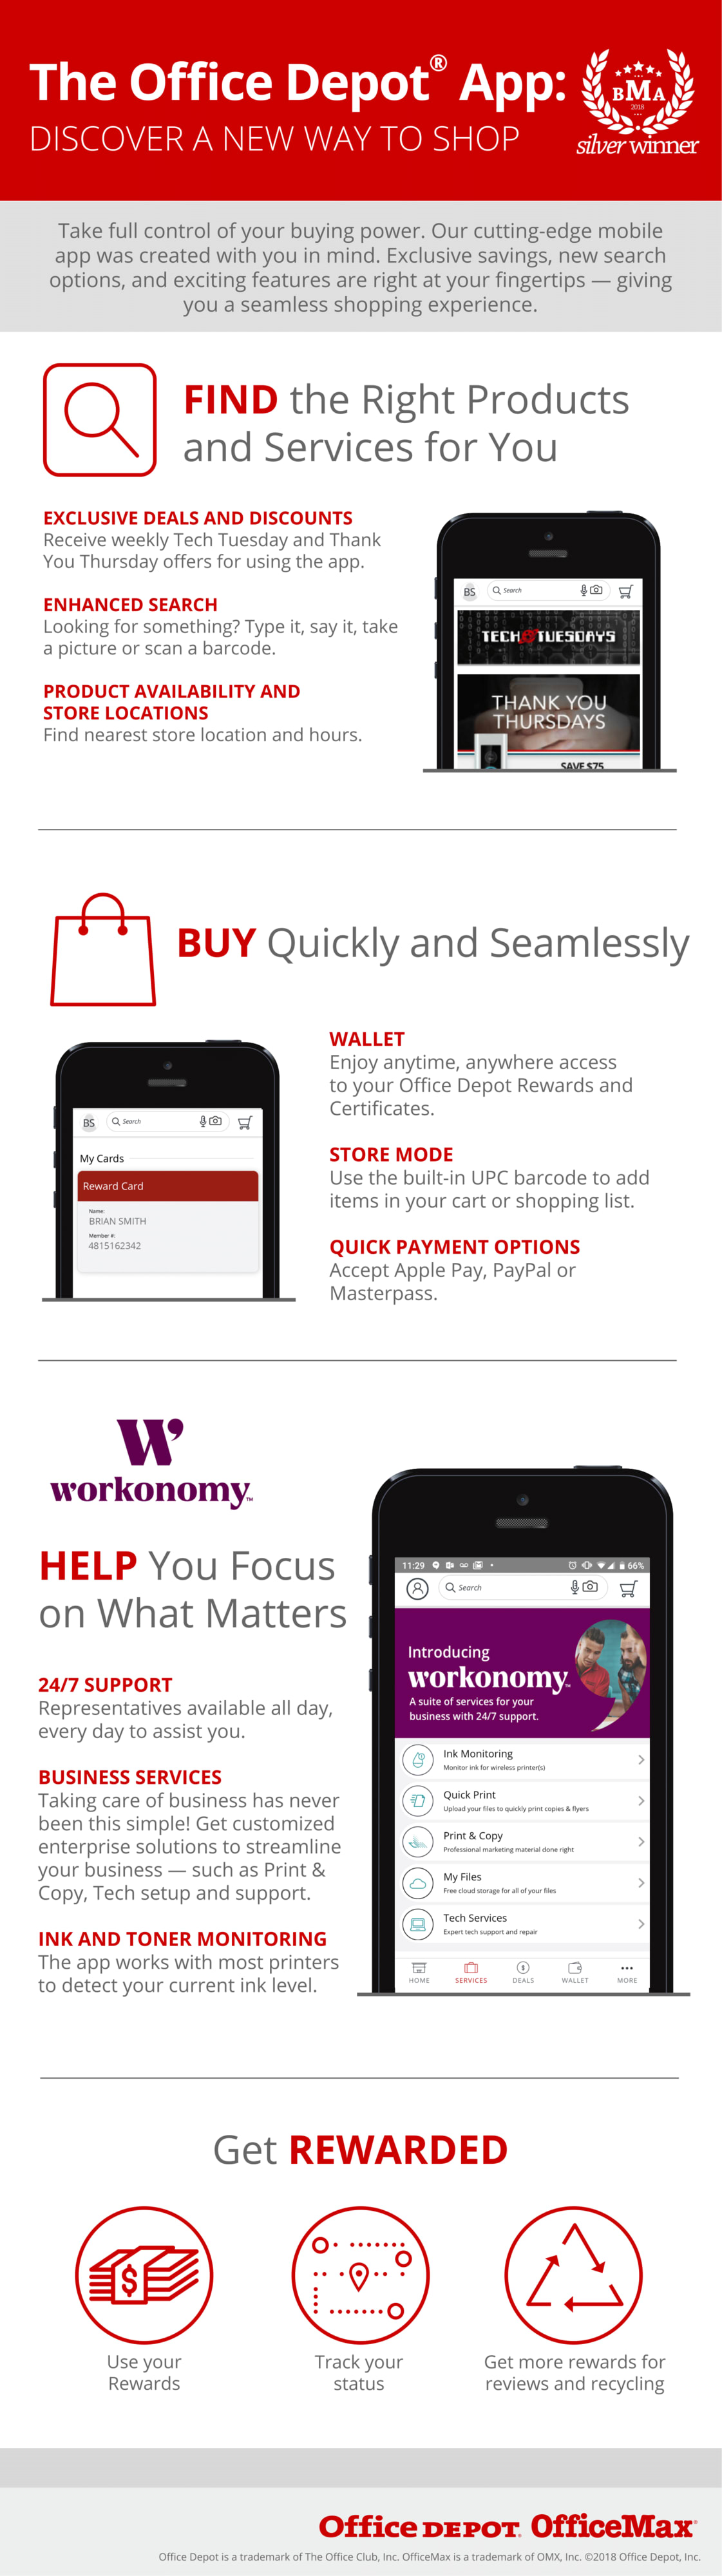 The Office Depot App